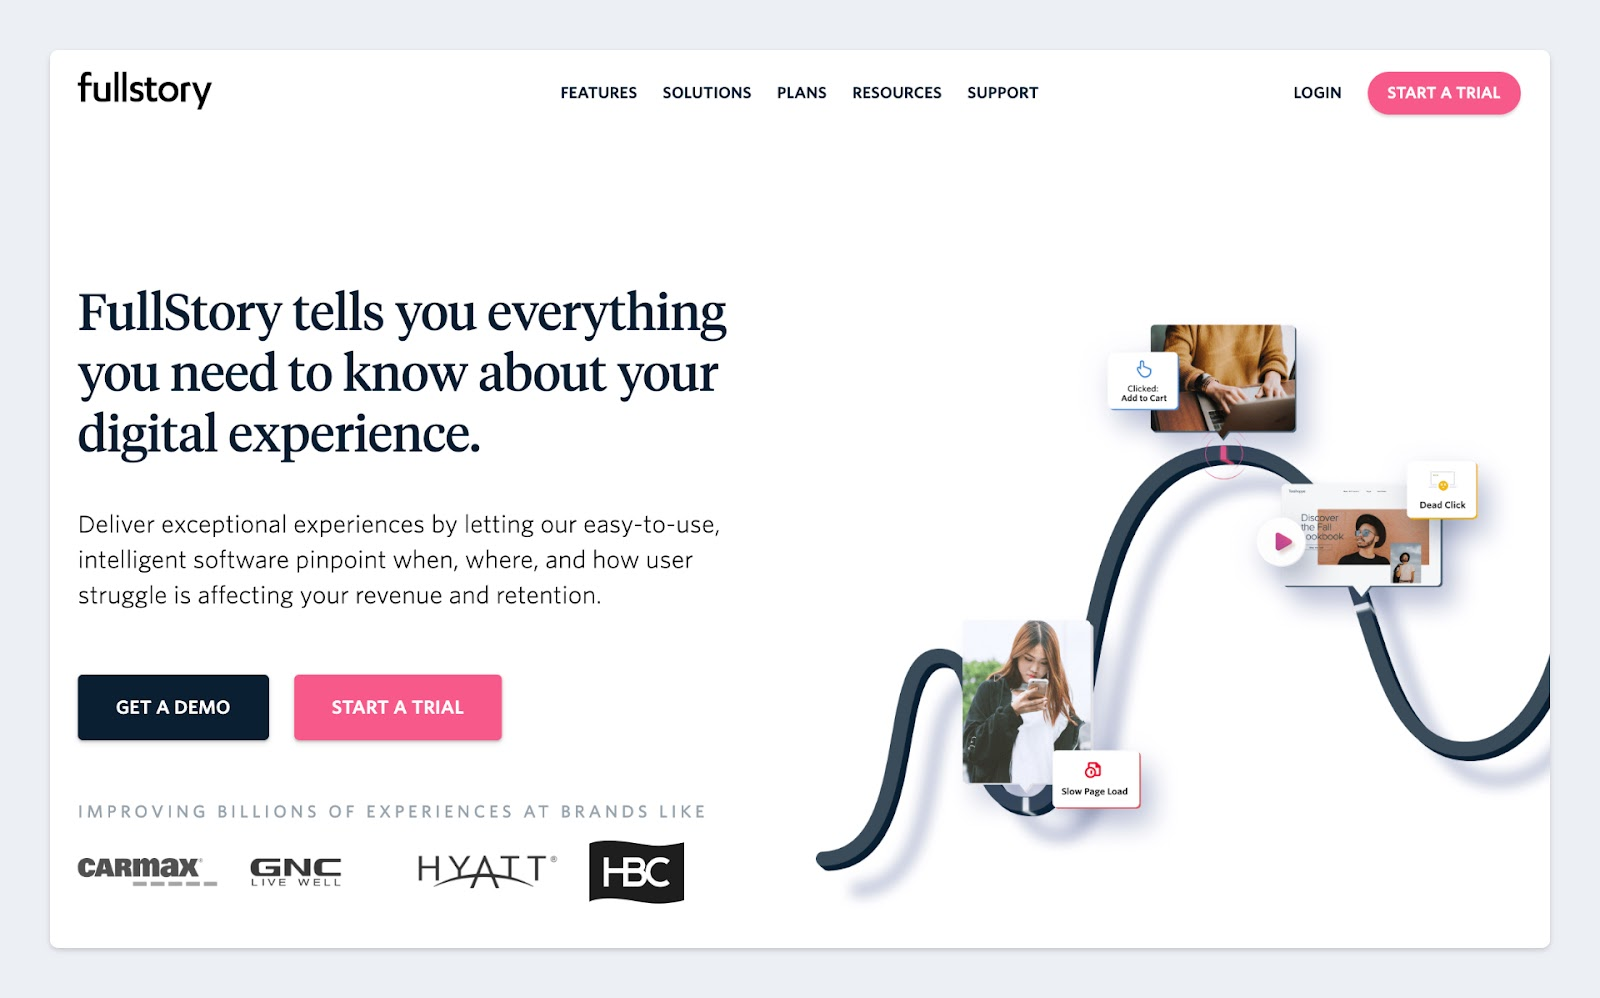 Fullstory makes use of high contrast buttons for important CTAs on their website.